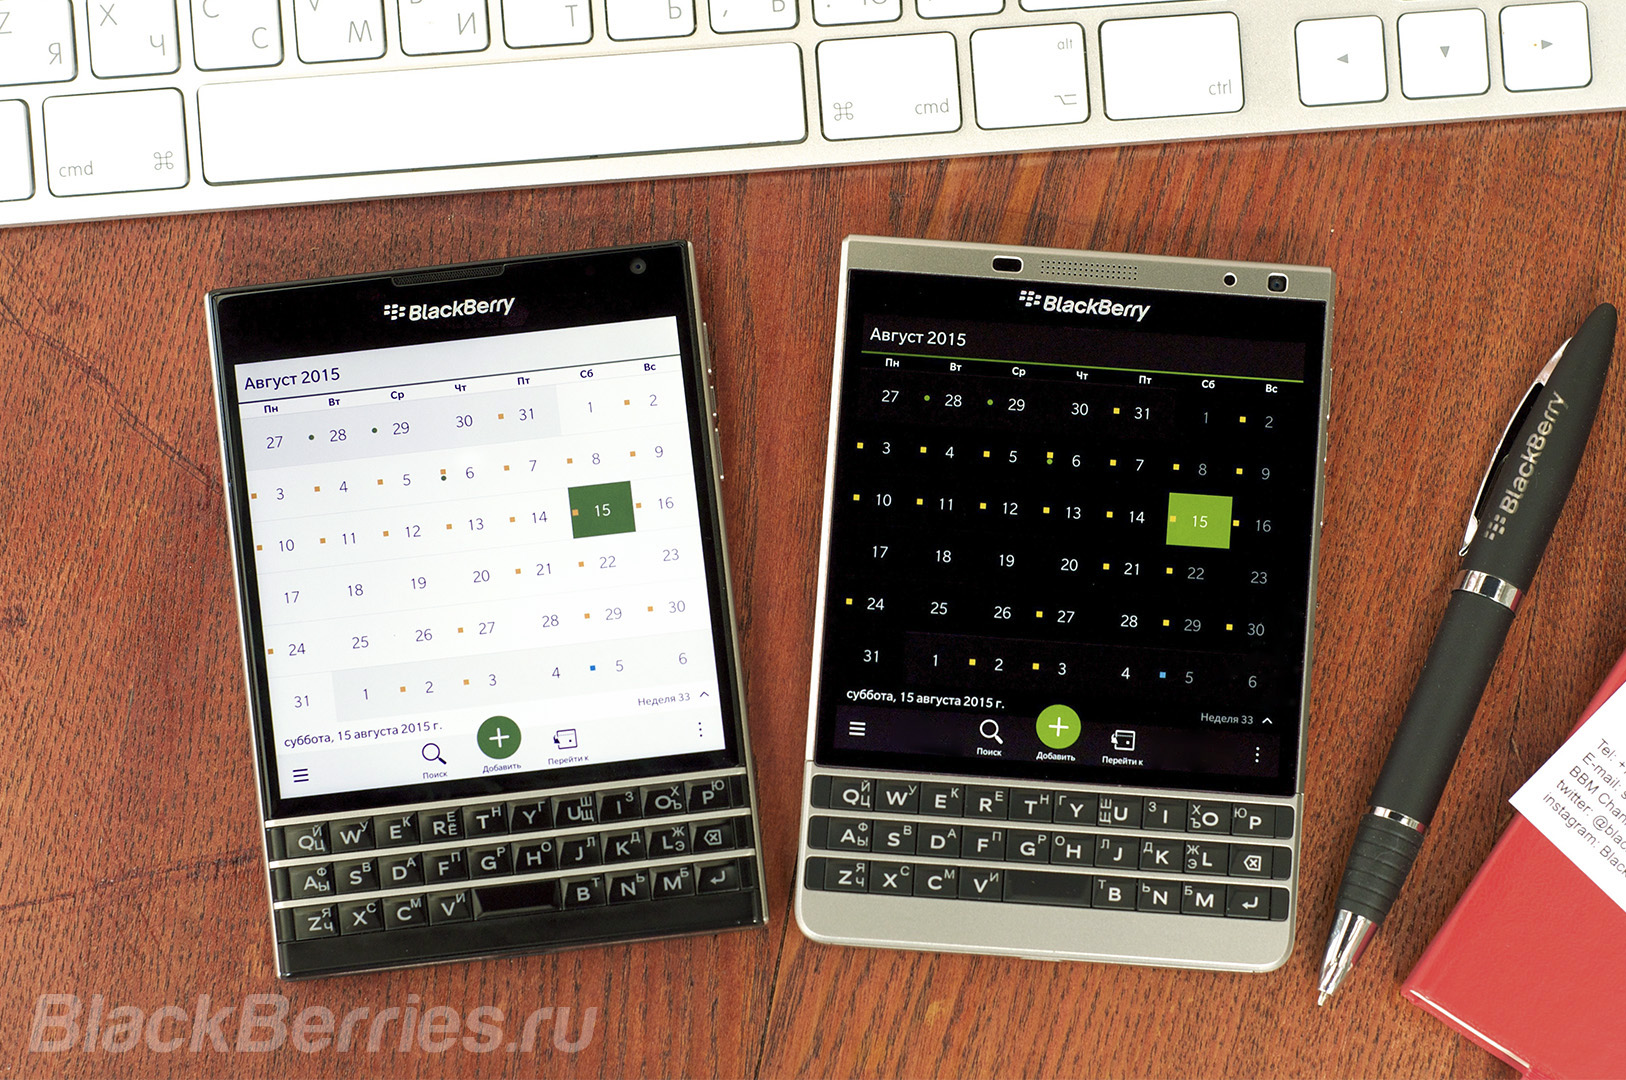 BlackBerry-Passport-Silver-Edition-2016